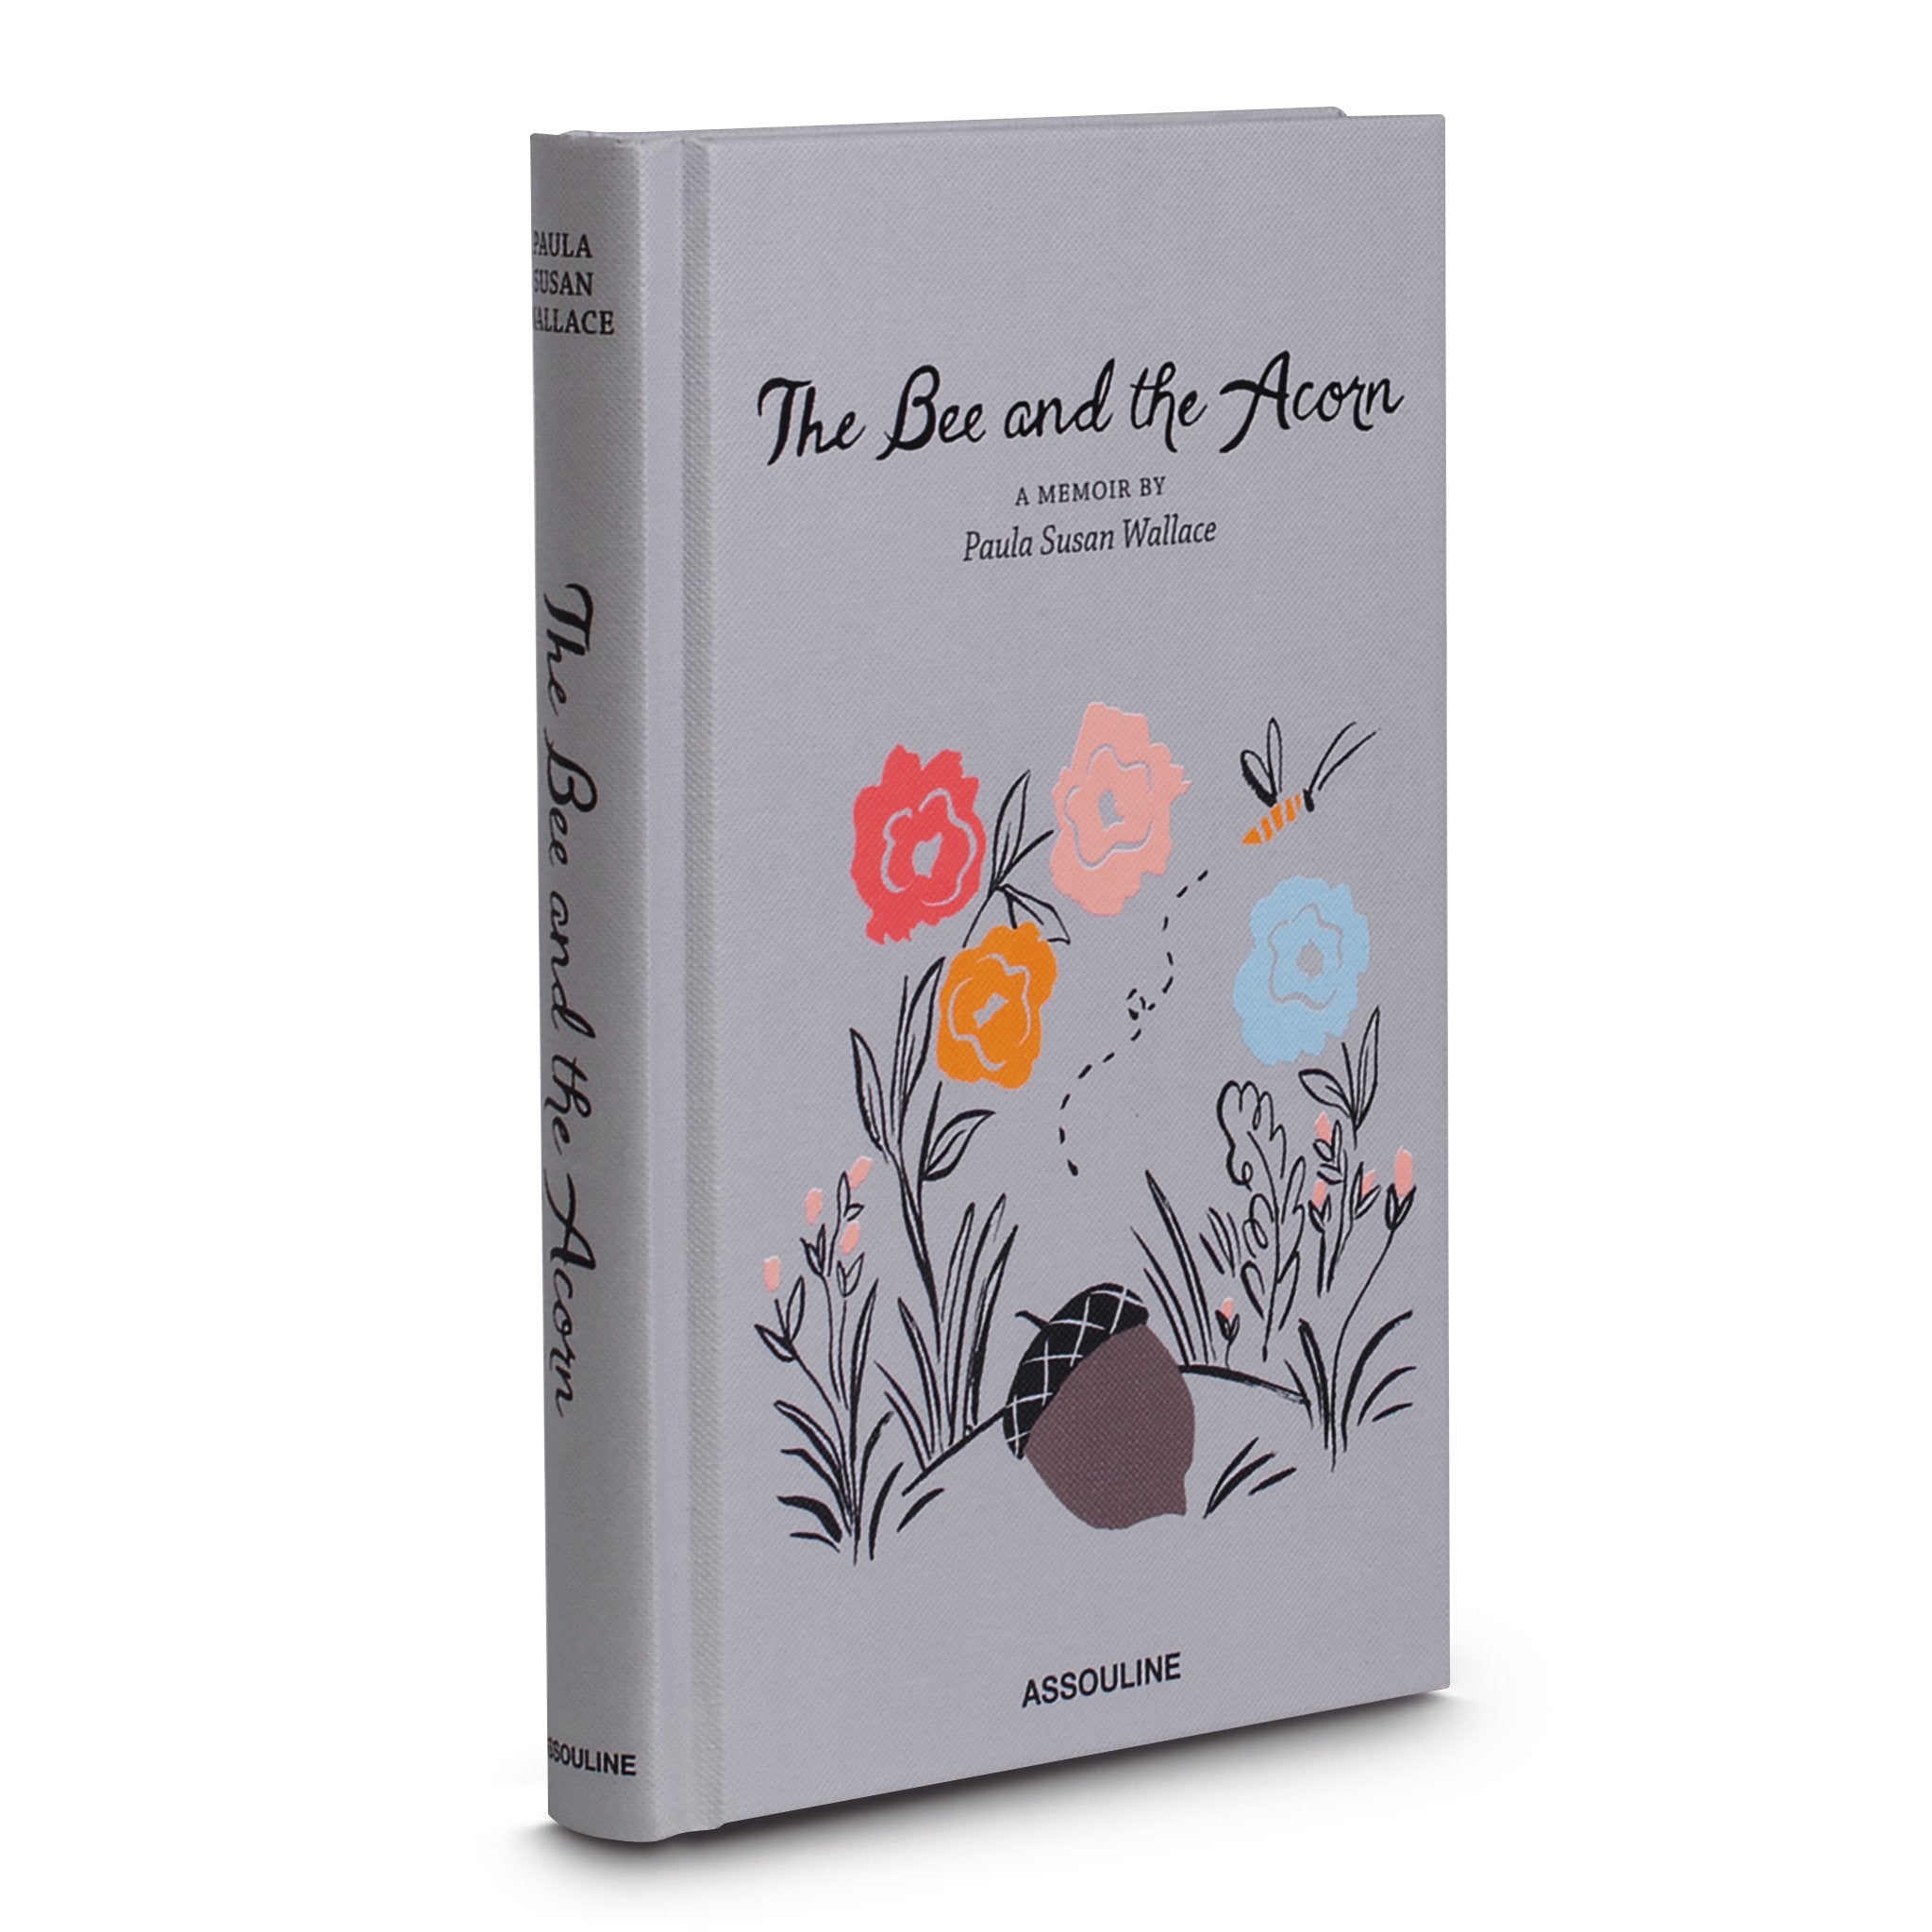 The Bee and the Acorn: A Memoir by Paula Susan Wallace - Assouline